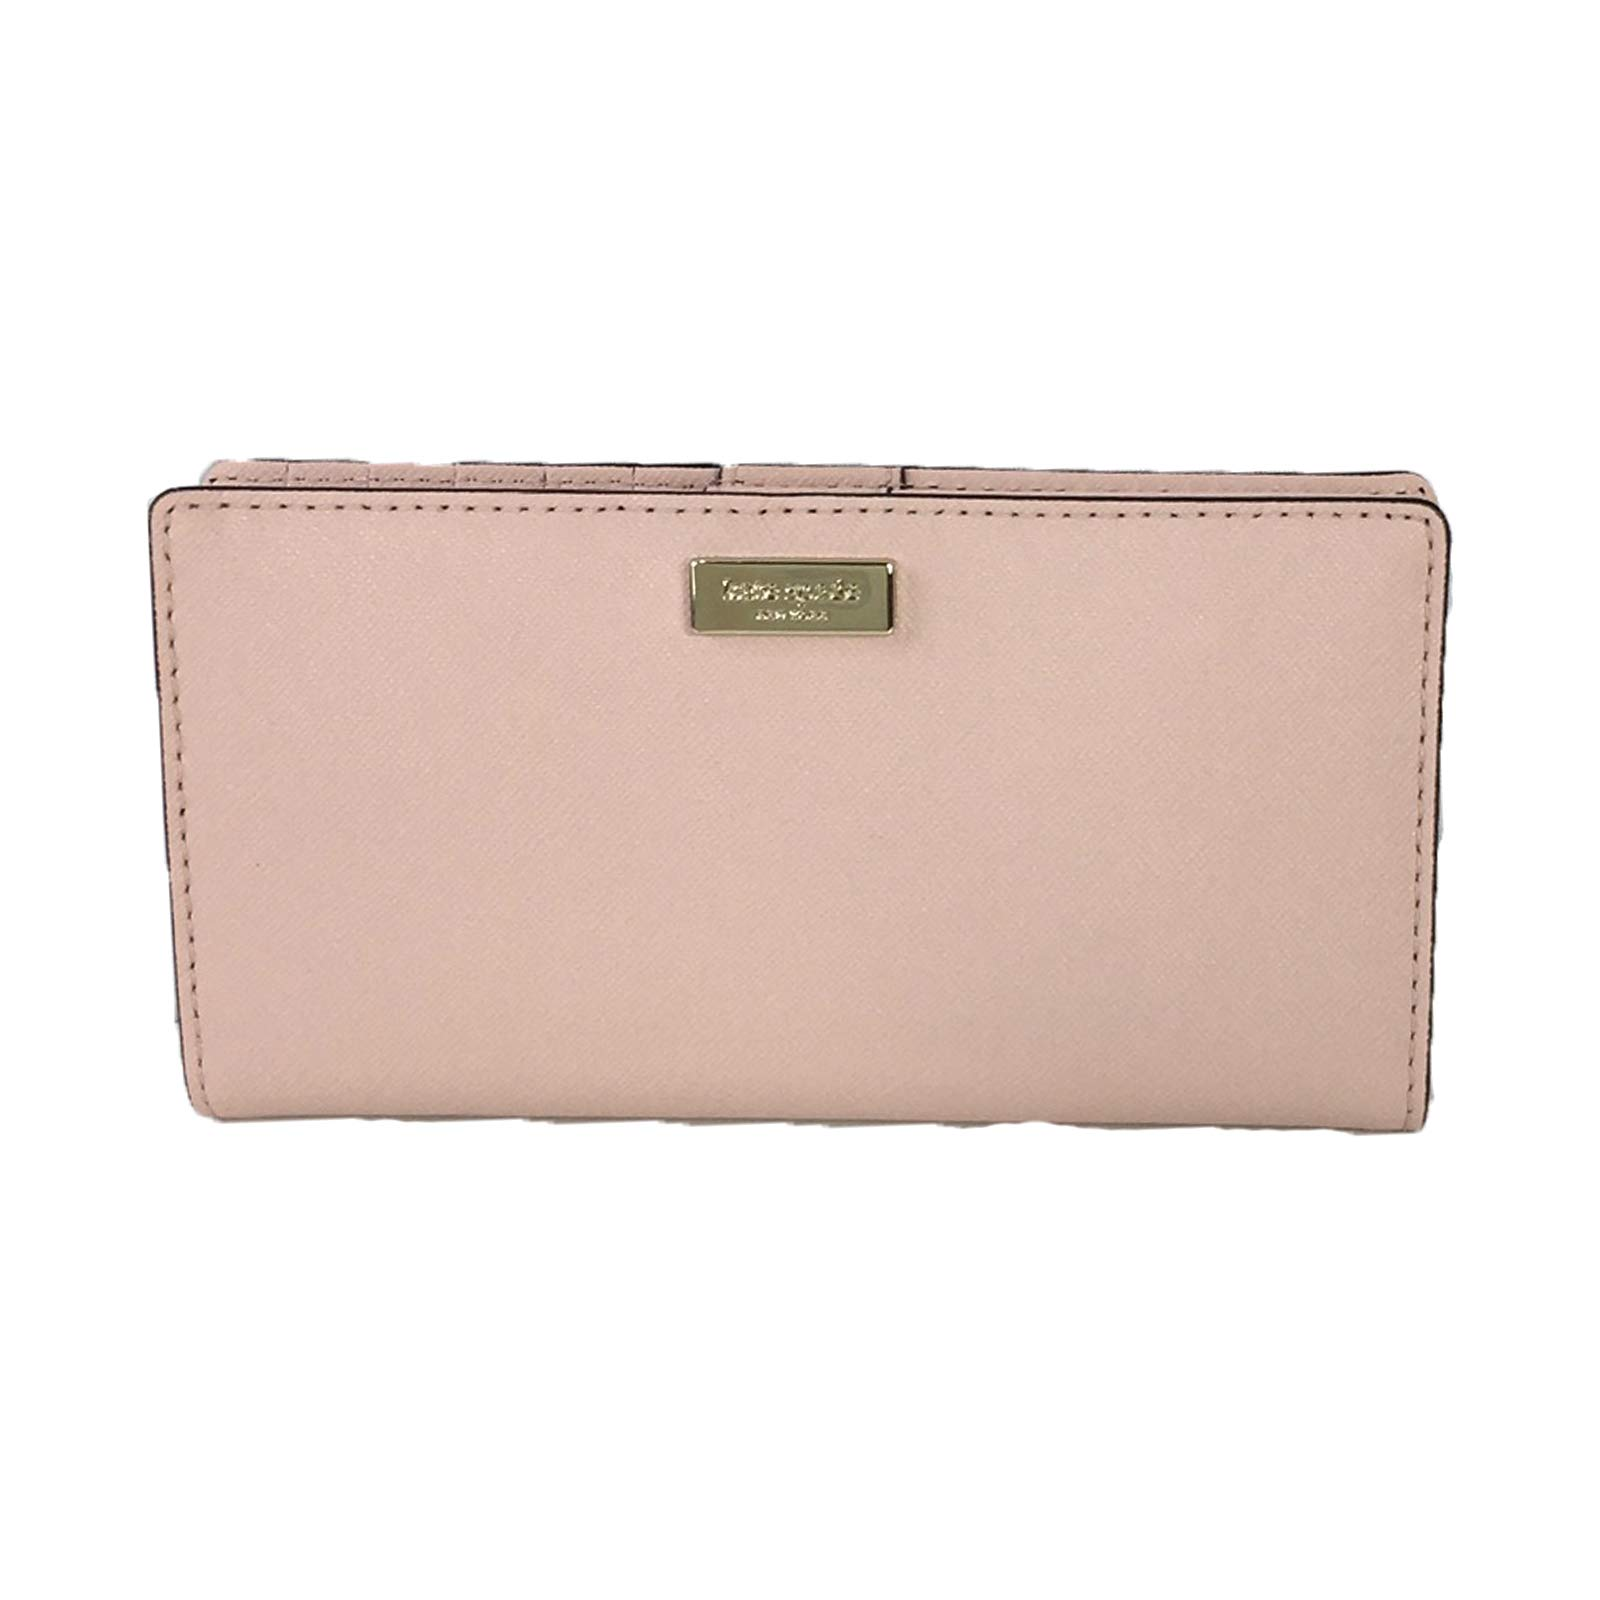 Kate Spade Laurel Way Leather Stacy Bifold Wallet, Warm Vellum Pink